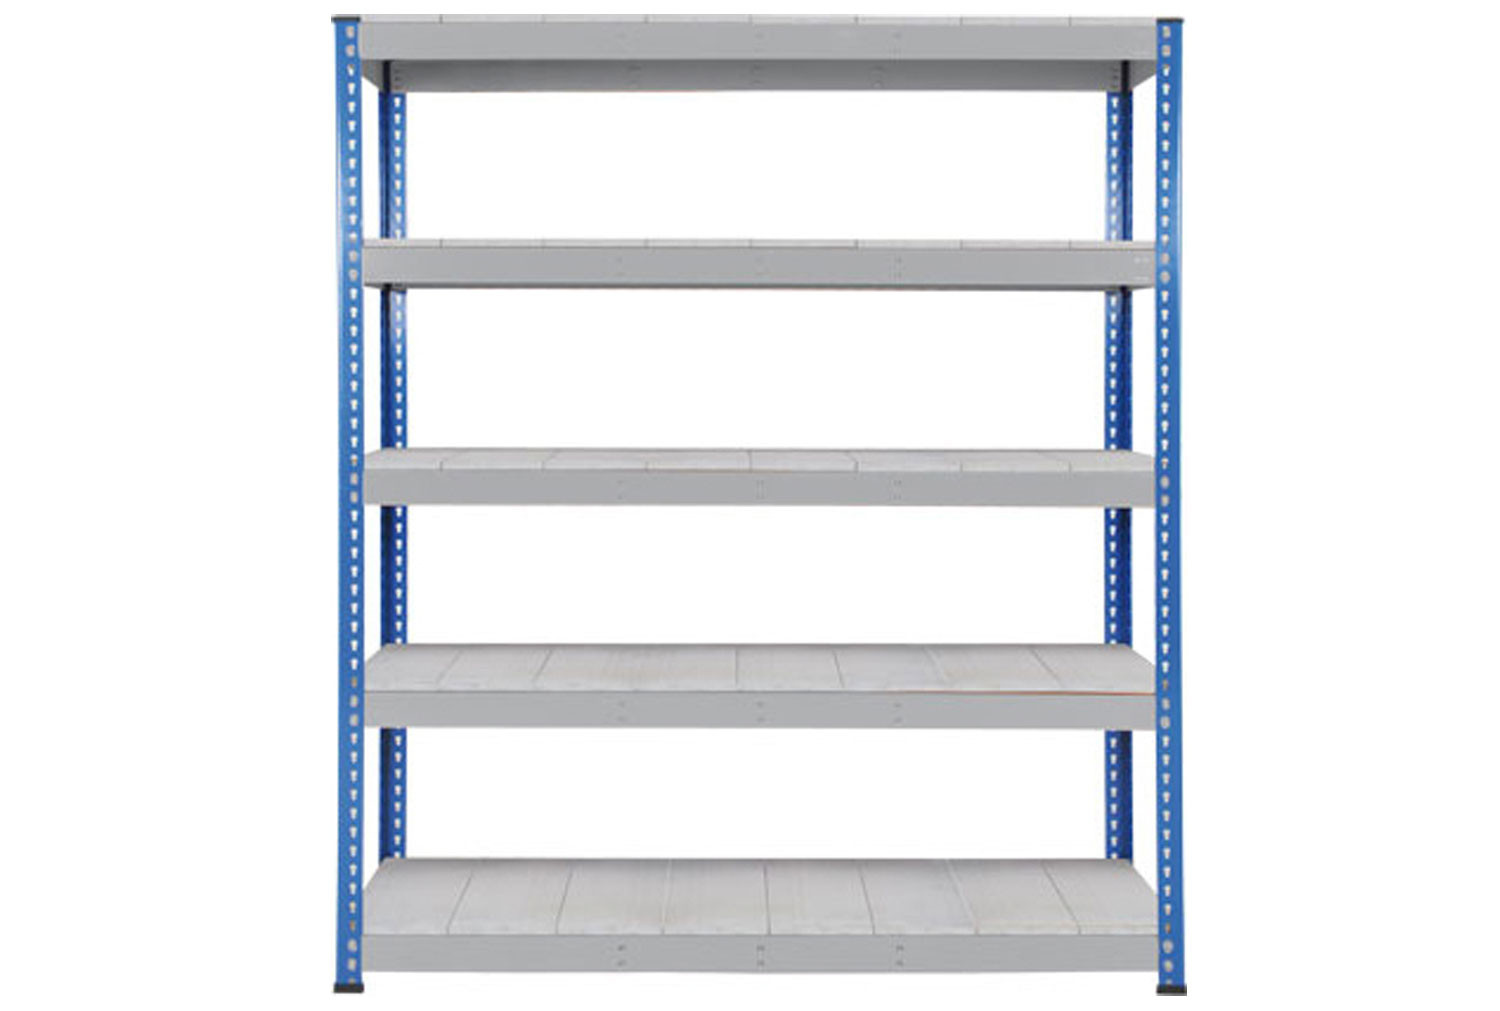 Rapid 1 Heavy Duty Shelving With 5 Galvanized Shelves 1525wx2440h (Blue/Grey)